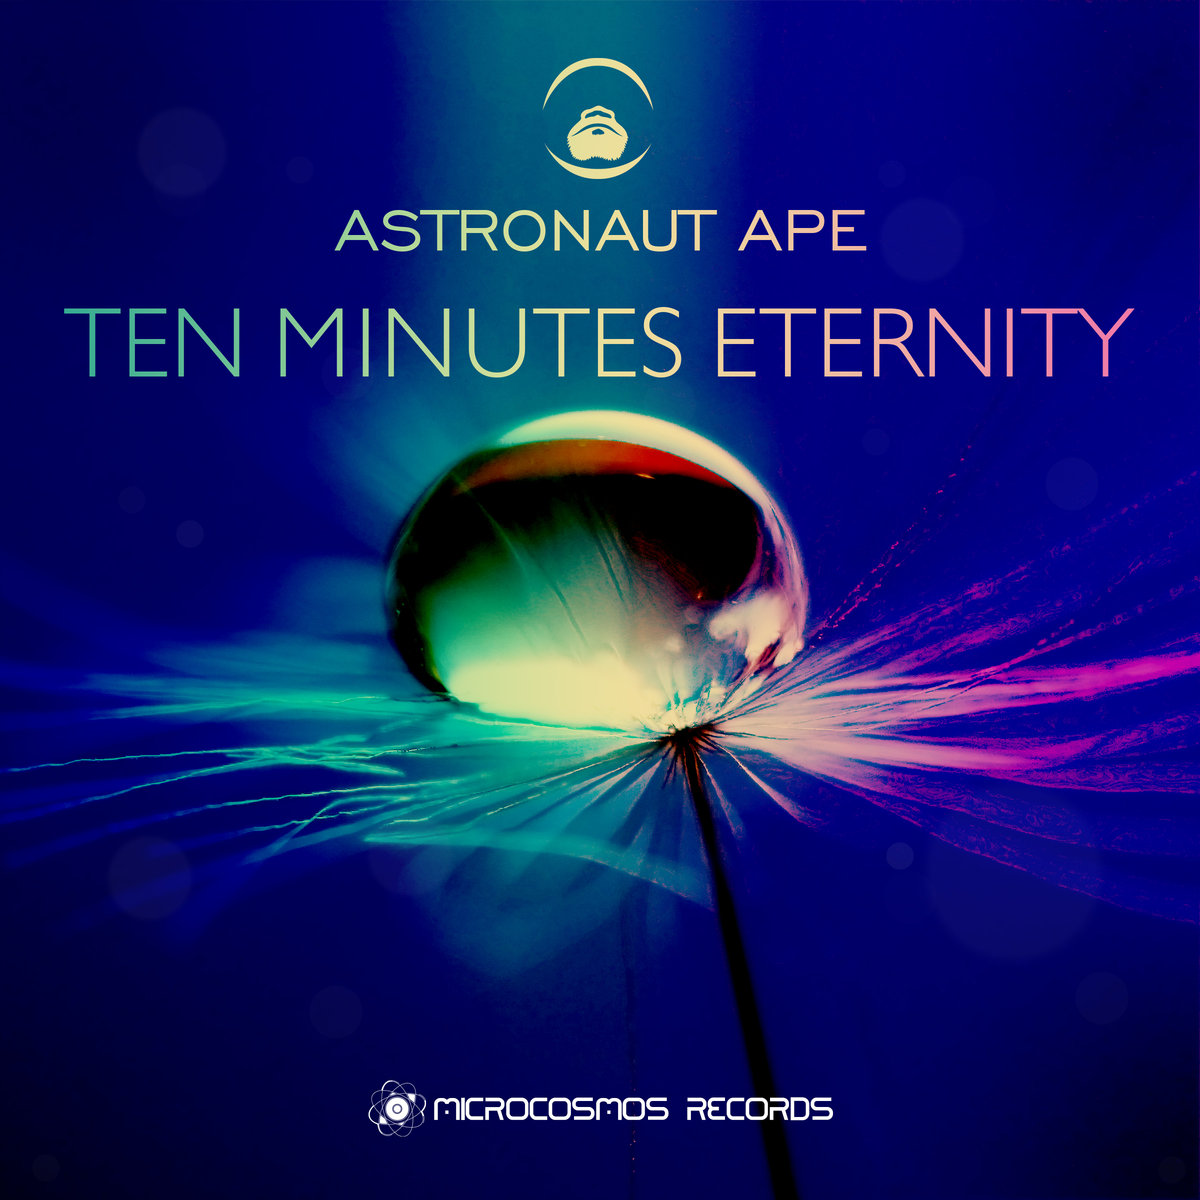 Astronaut Ape - Bioluminescense @ 'Ten Minutes Eternity' album (ambient, chill-out)